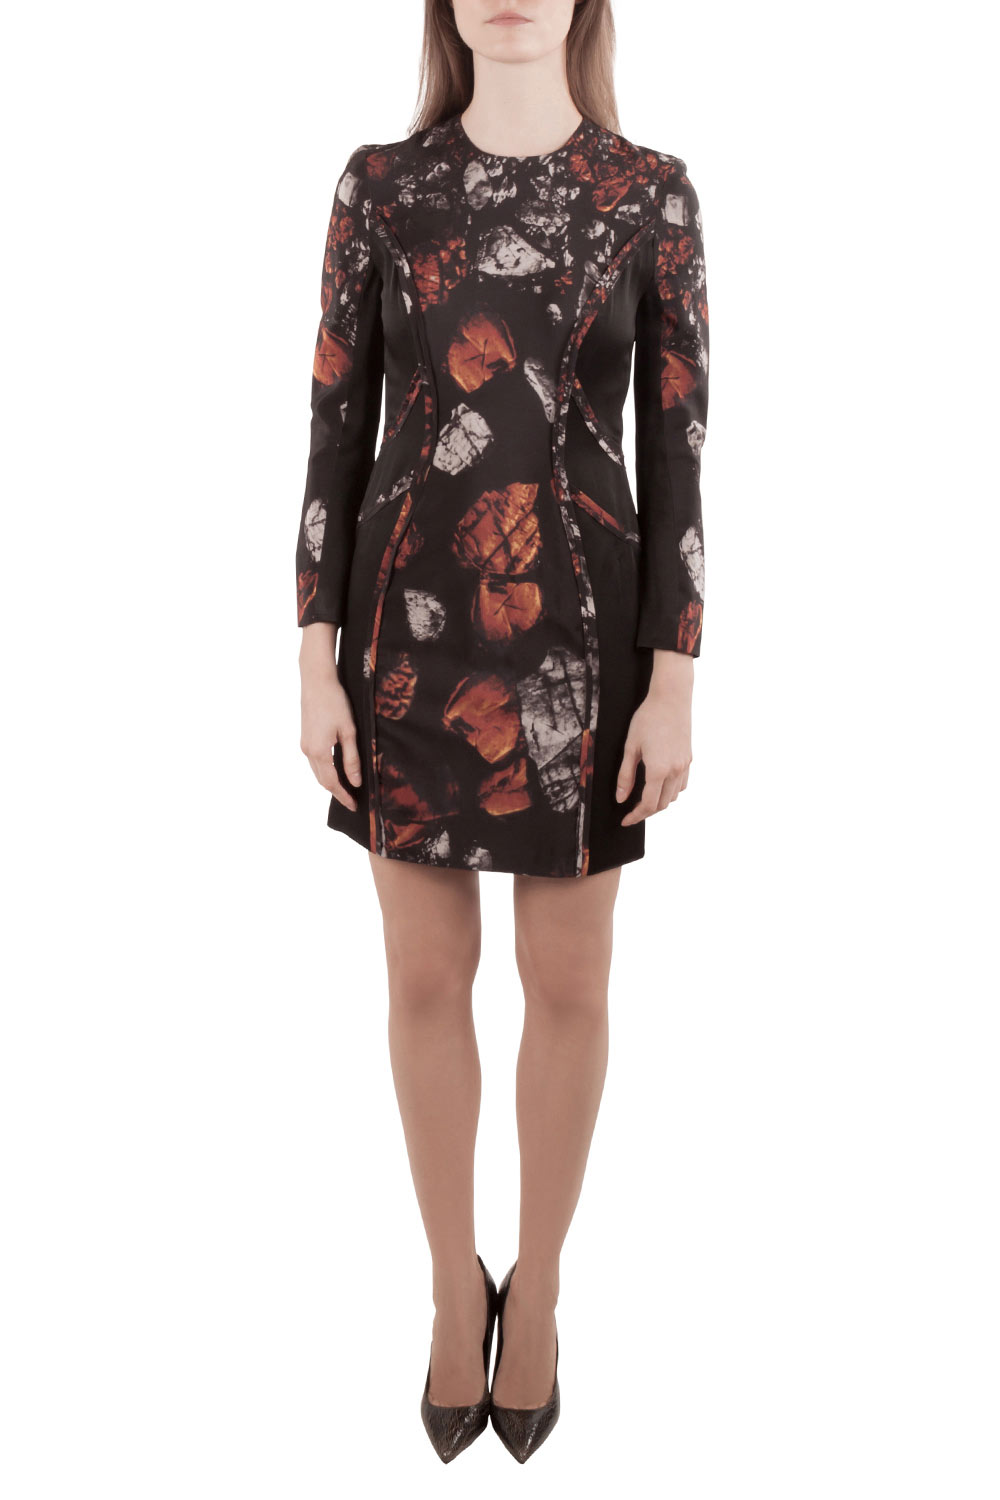 Pre-owned Monique Lhuillier Black Abstract Print Silk Blend Long Sleeve Sheath Dress S